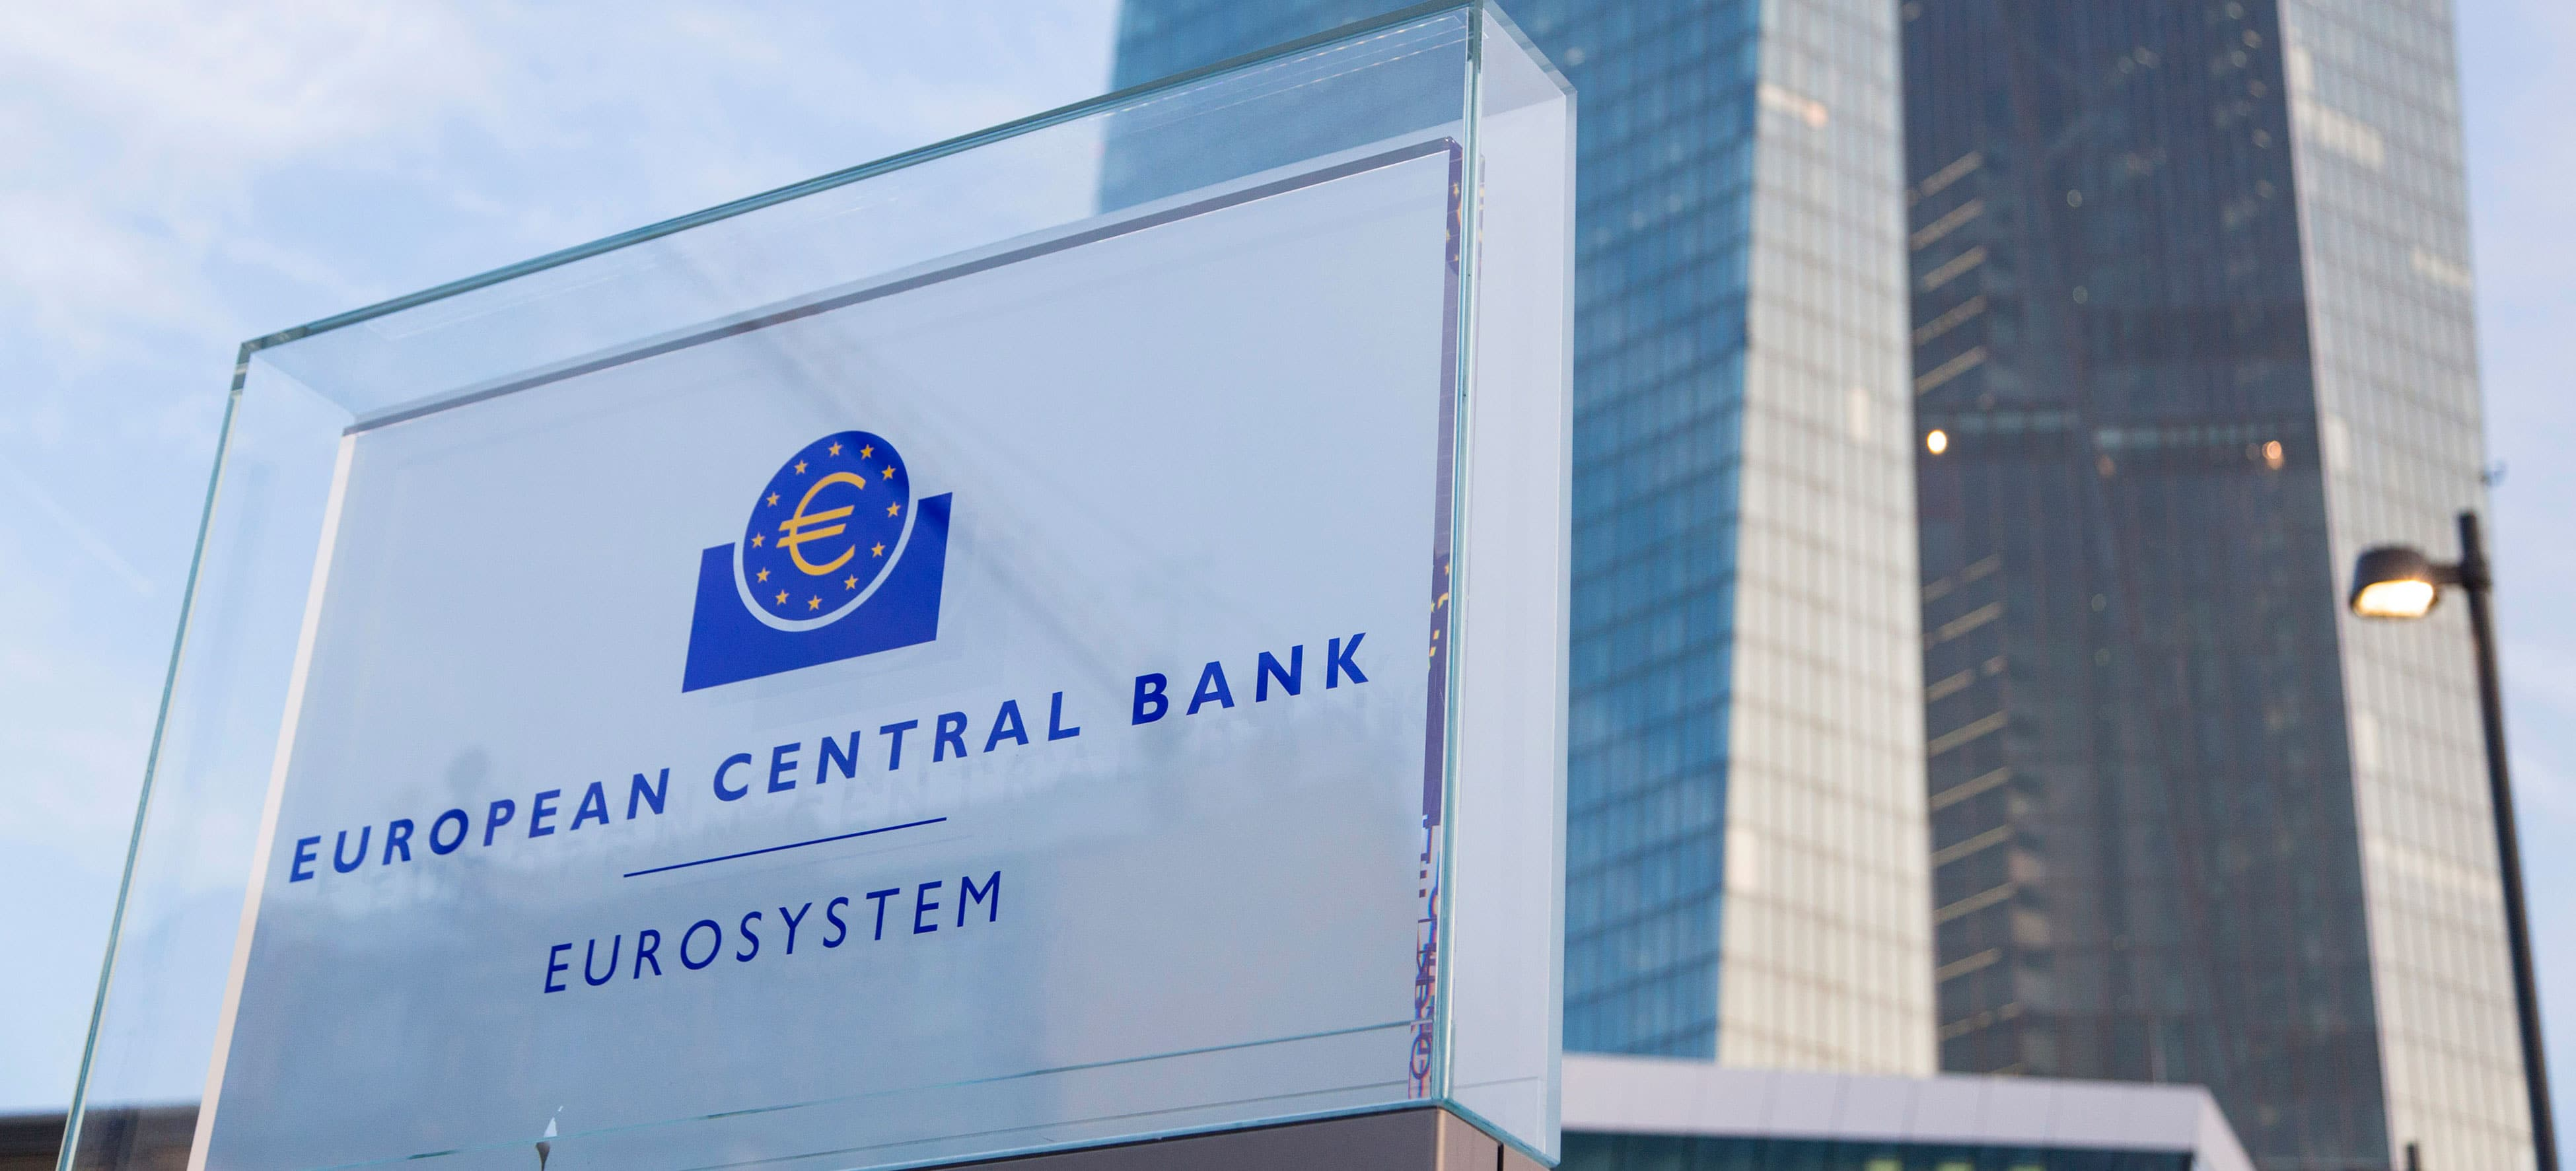 What Really Happened at the ECB Conference?